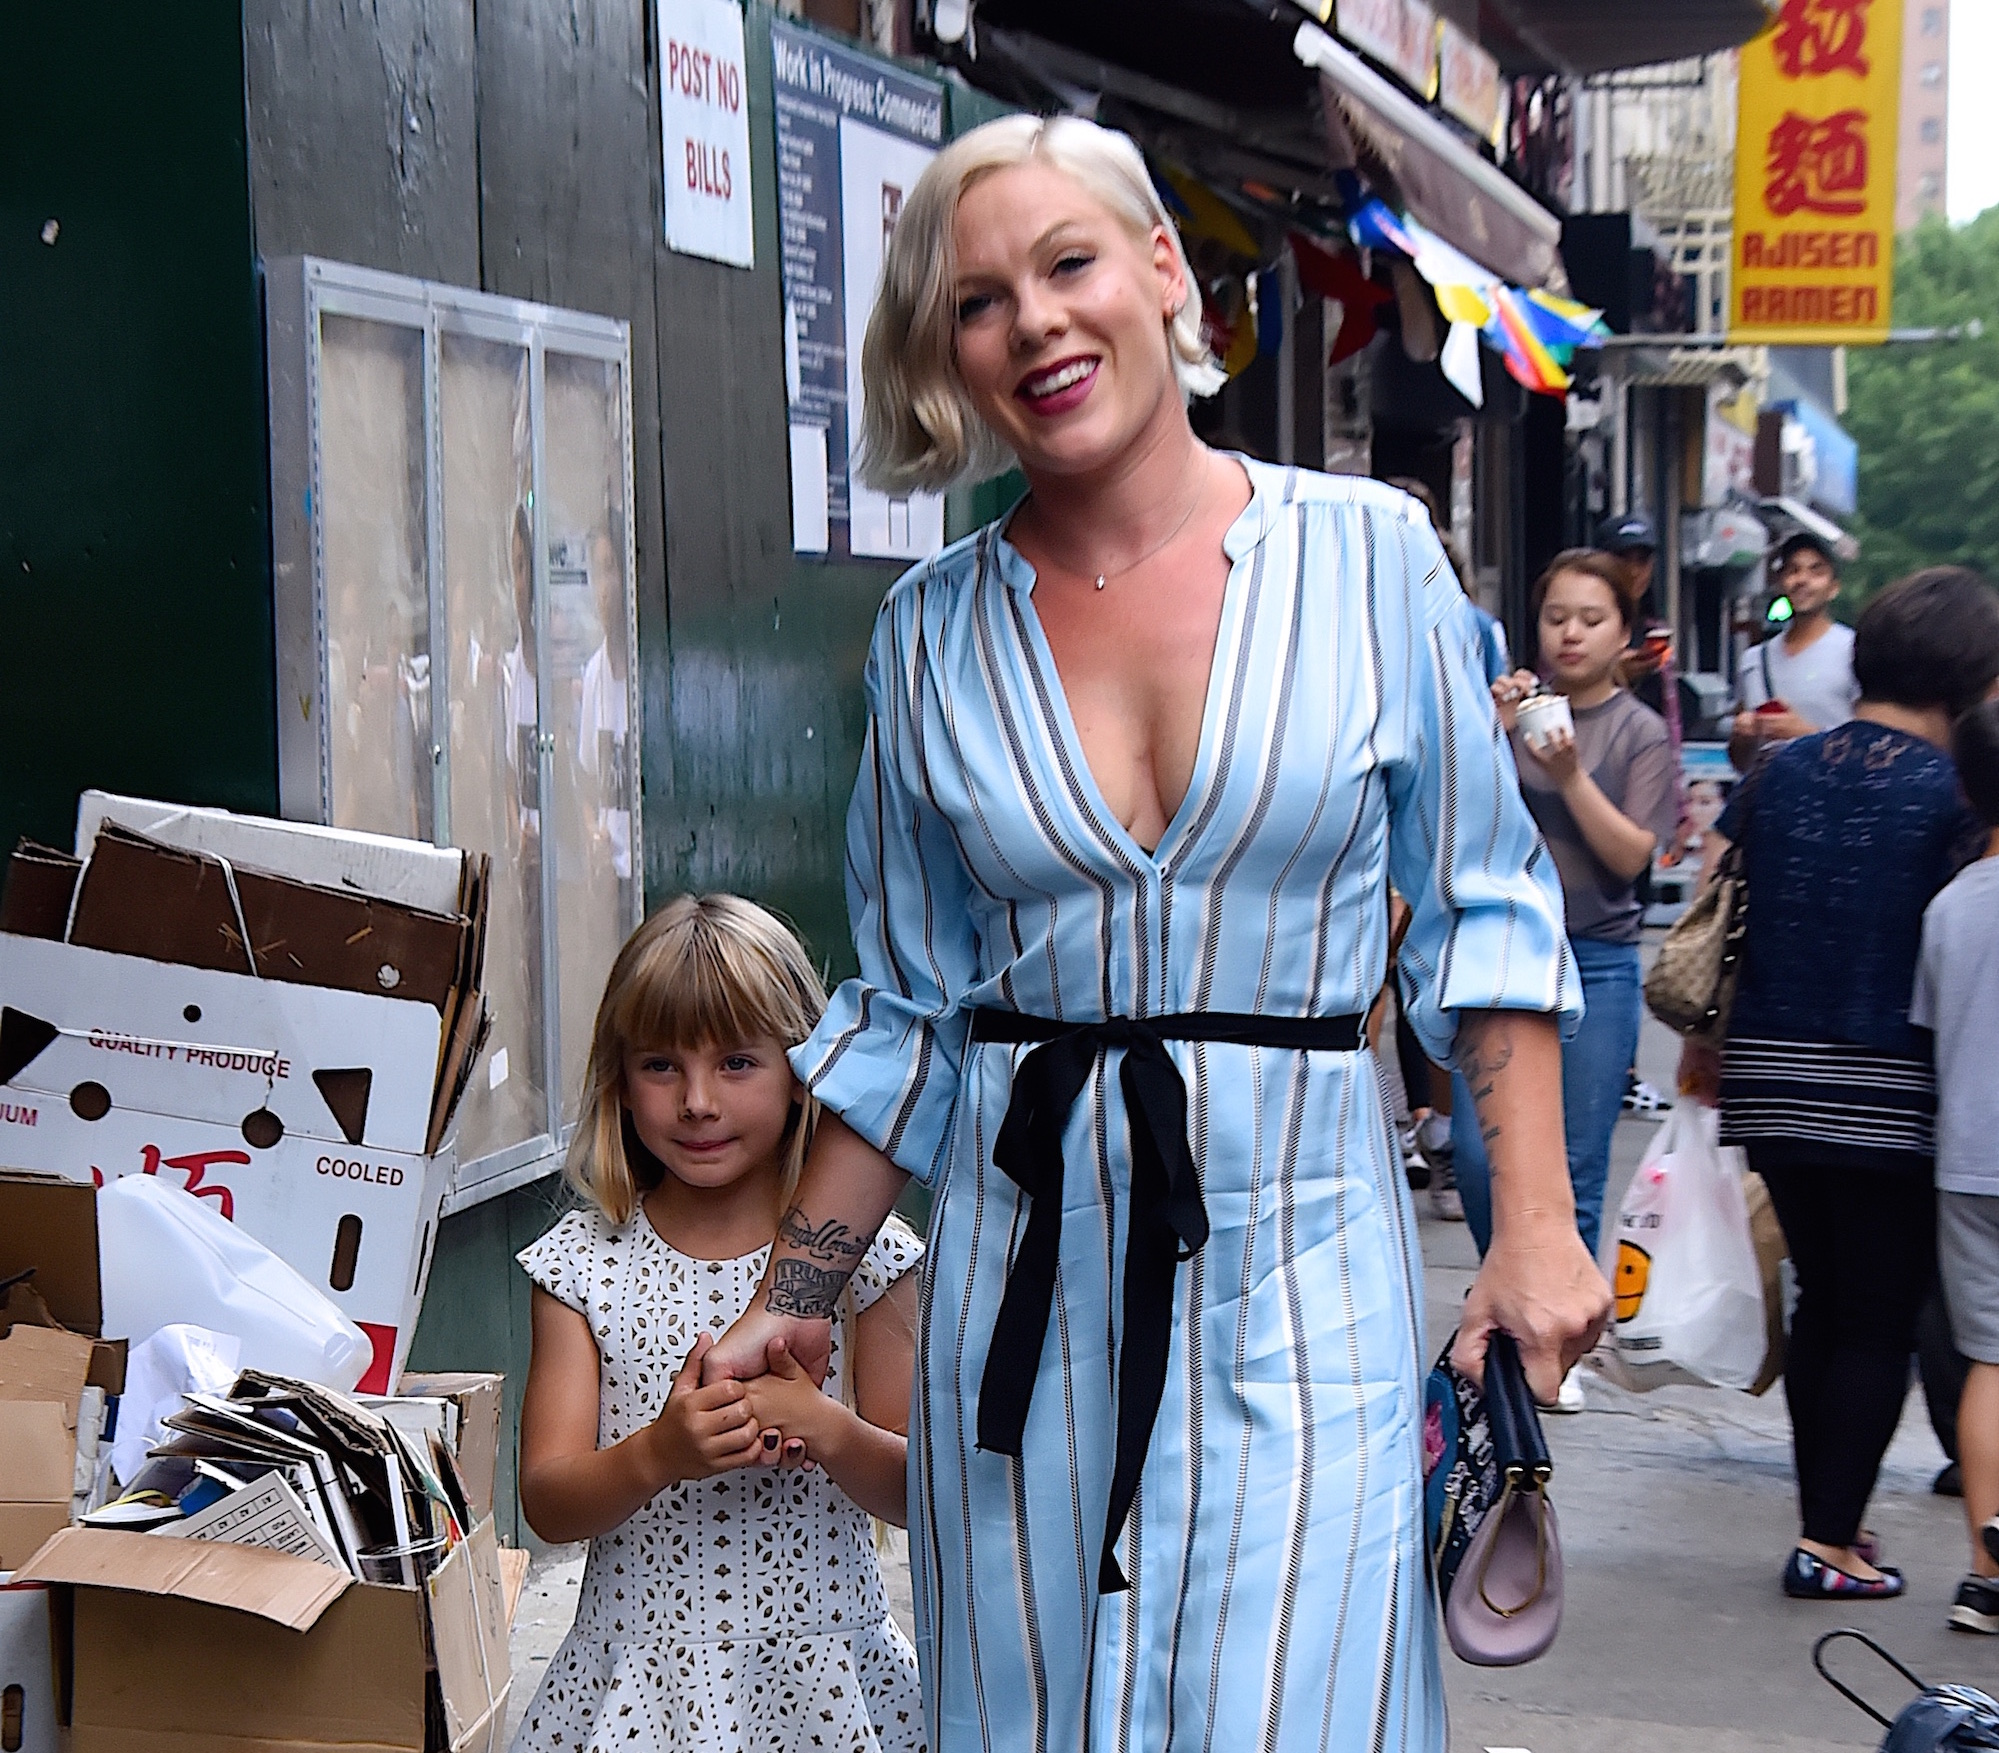 Pink has been accused of putting her baby in a dangerous situation